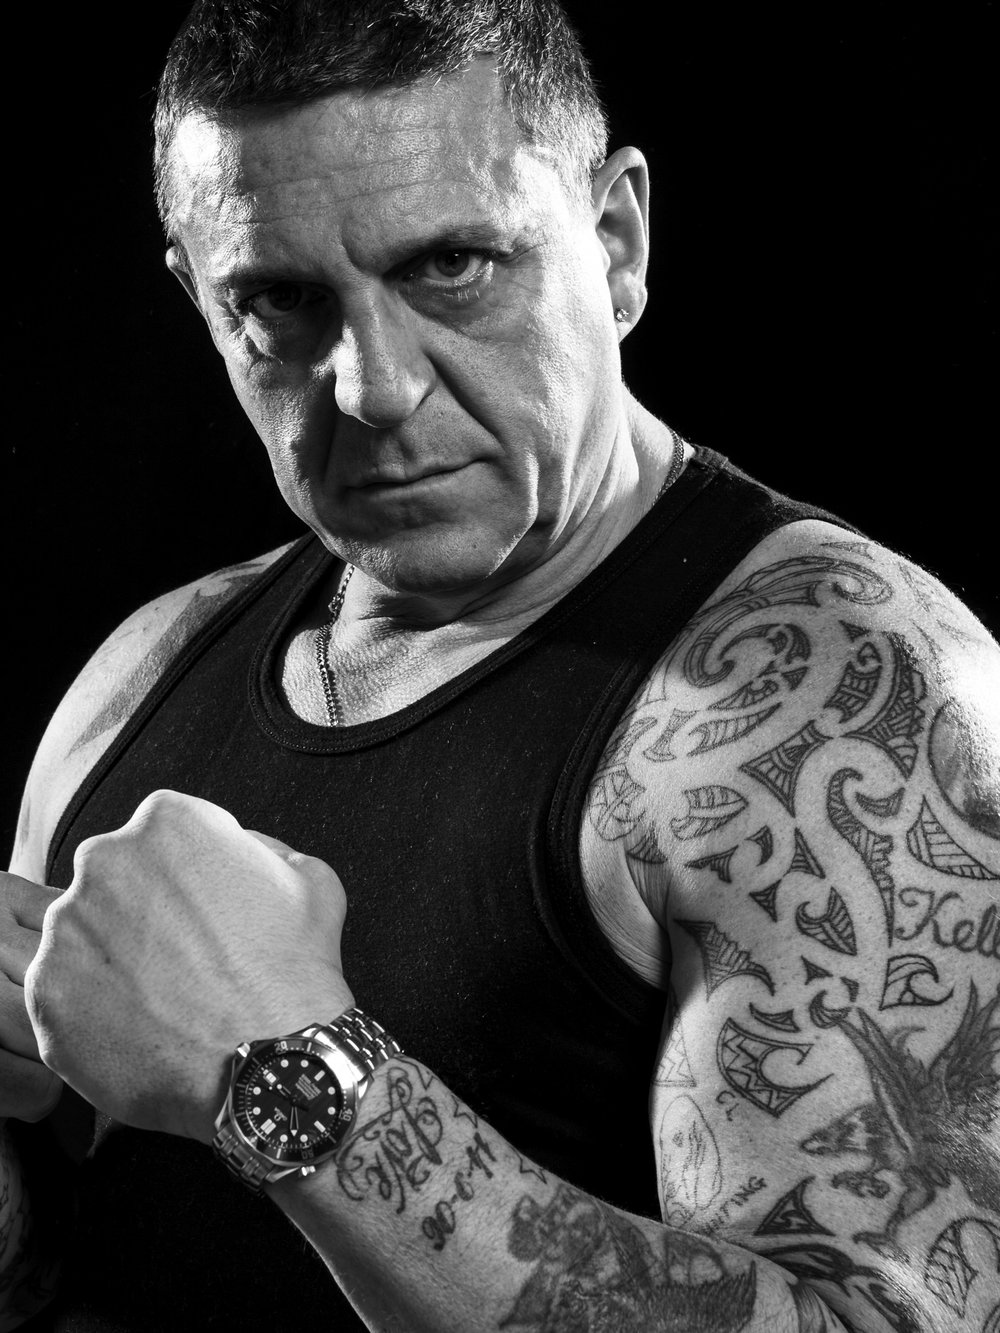 Touchglove Promotions Boxing Fight Match Nina Cranstoun Tony Denham Carlton Leach Football Factory Rise of the Footsoldier